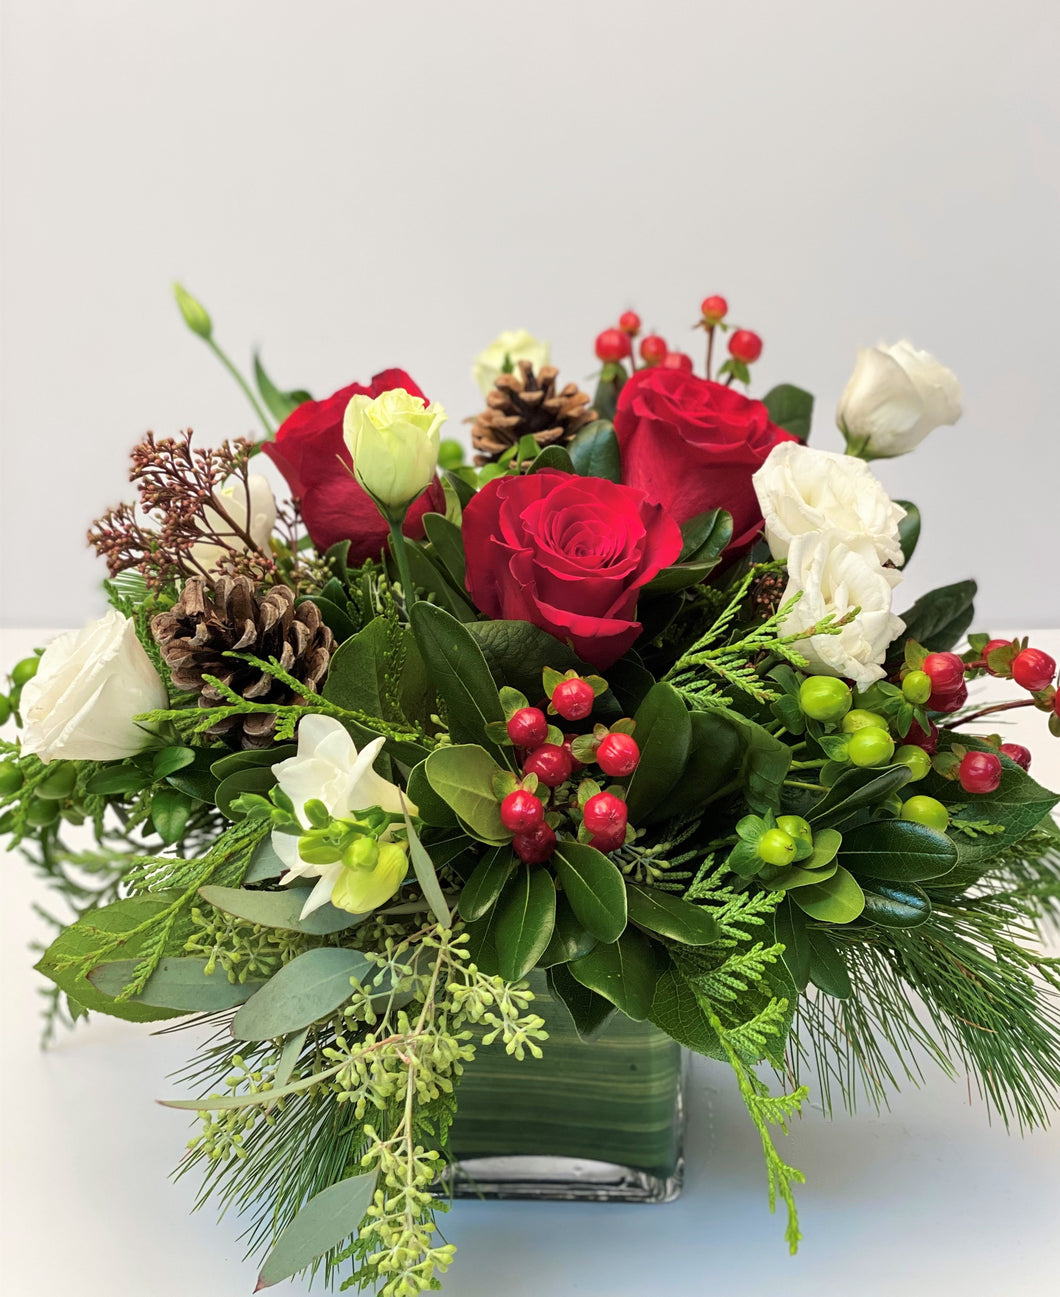 X44 - Festive Holiday Vase Arrangement - Flowerplustoronto